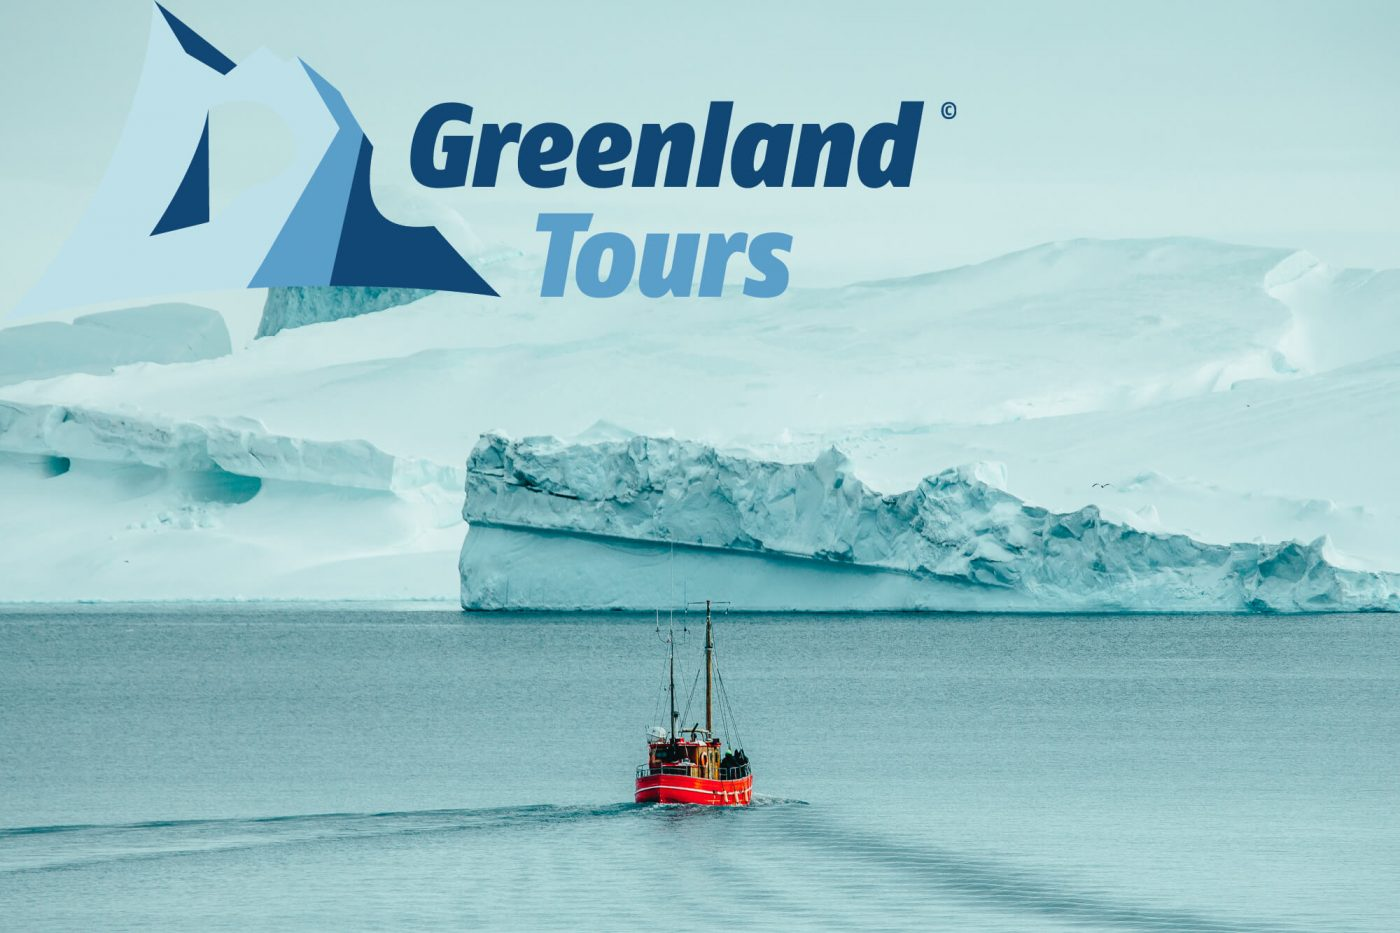 Greenland Tours: Best of the West